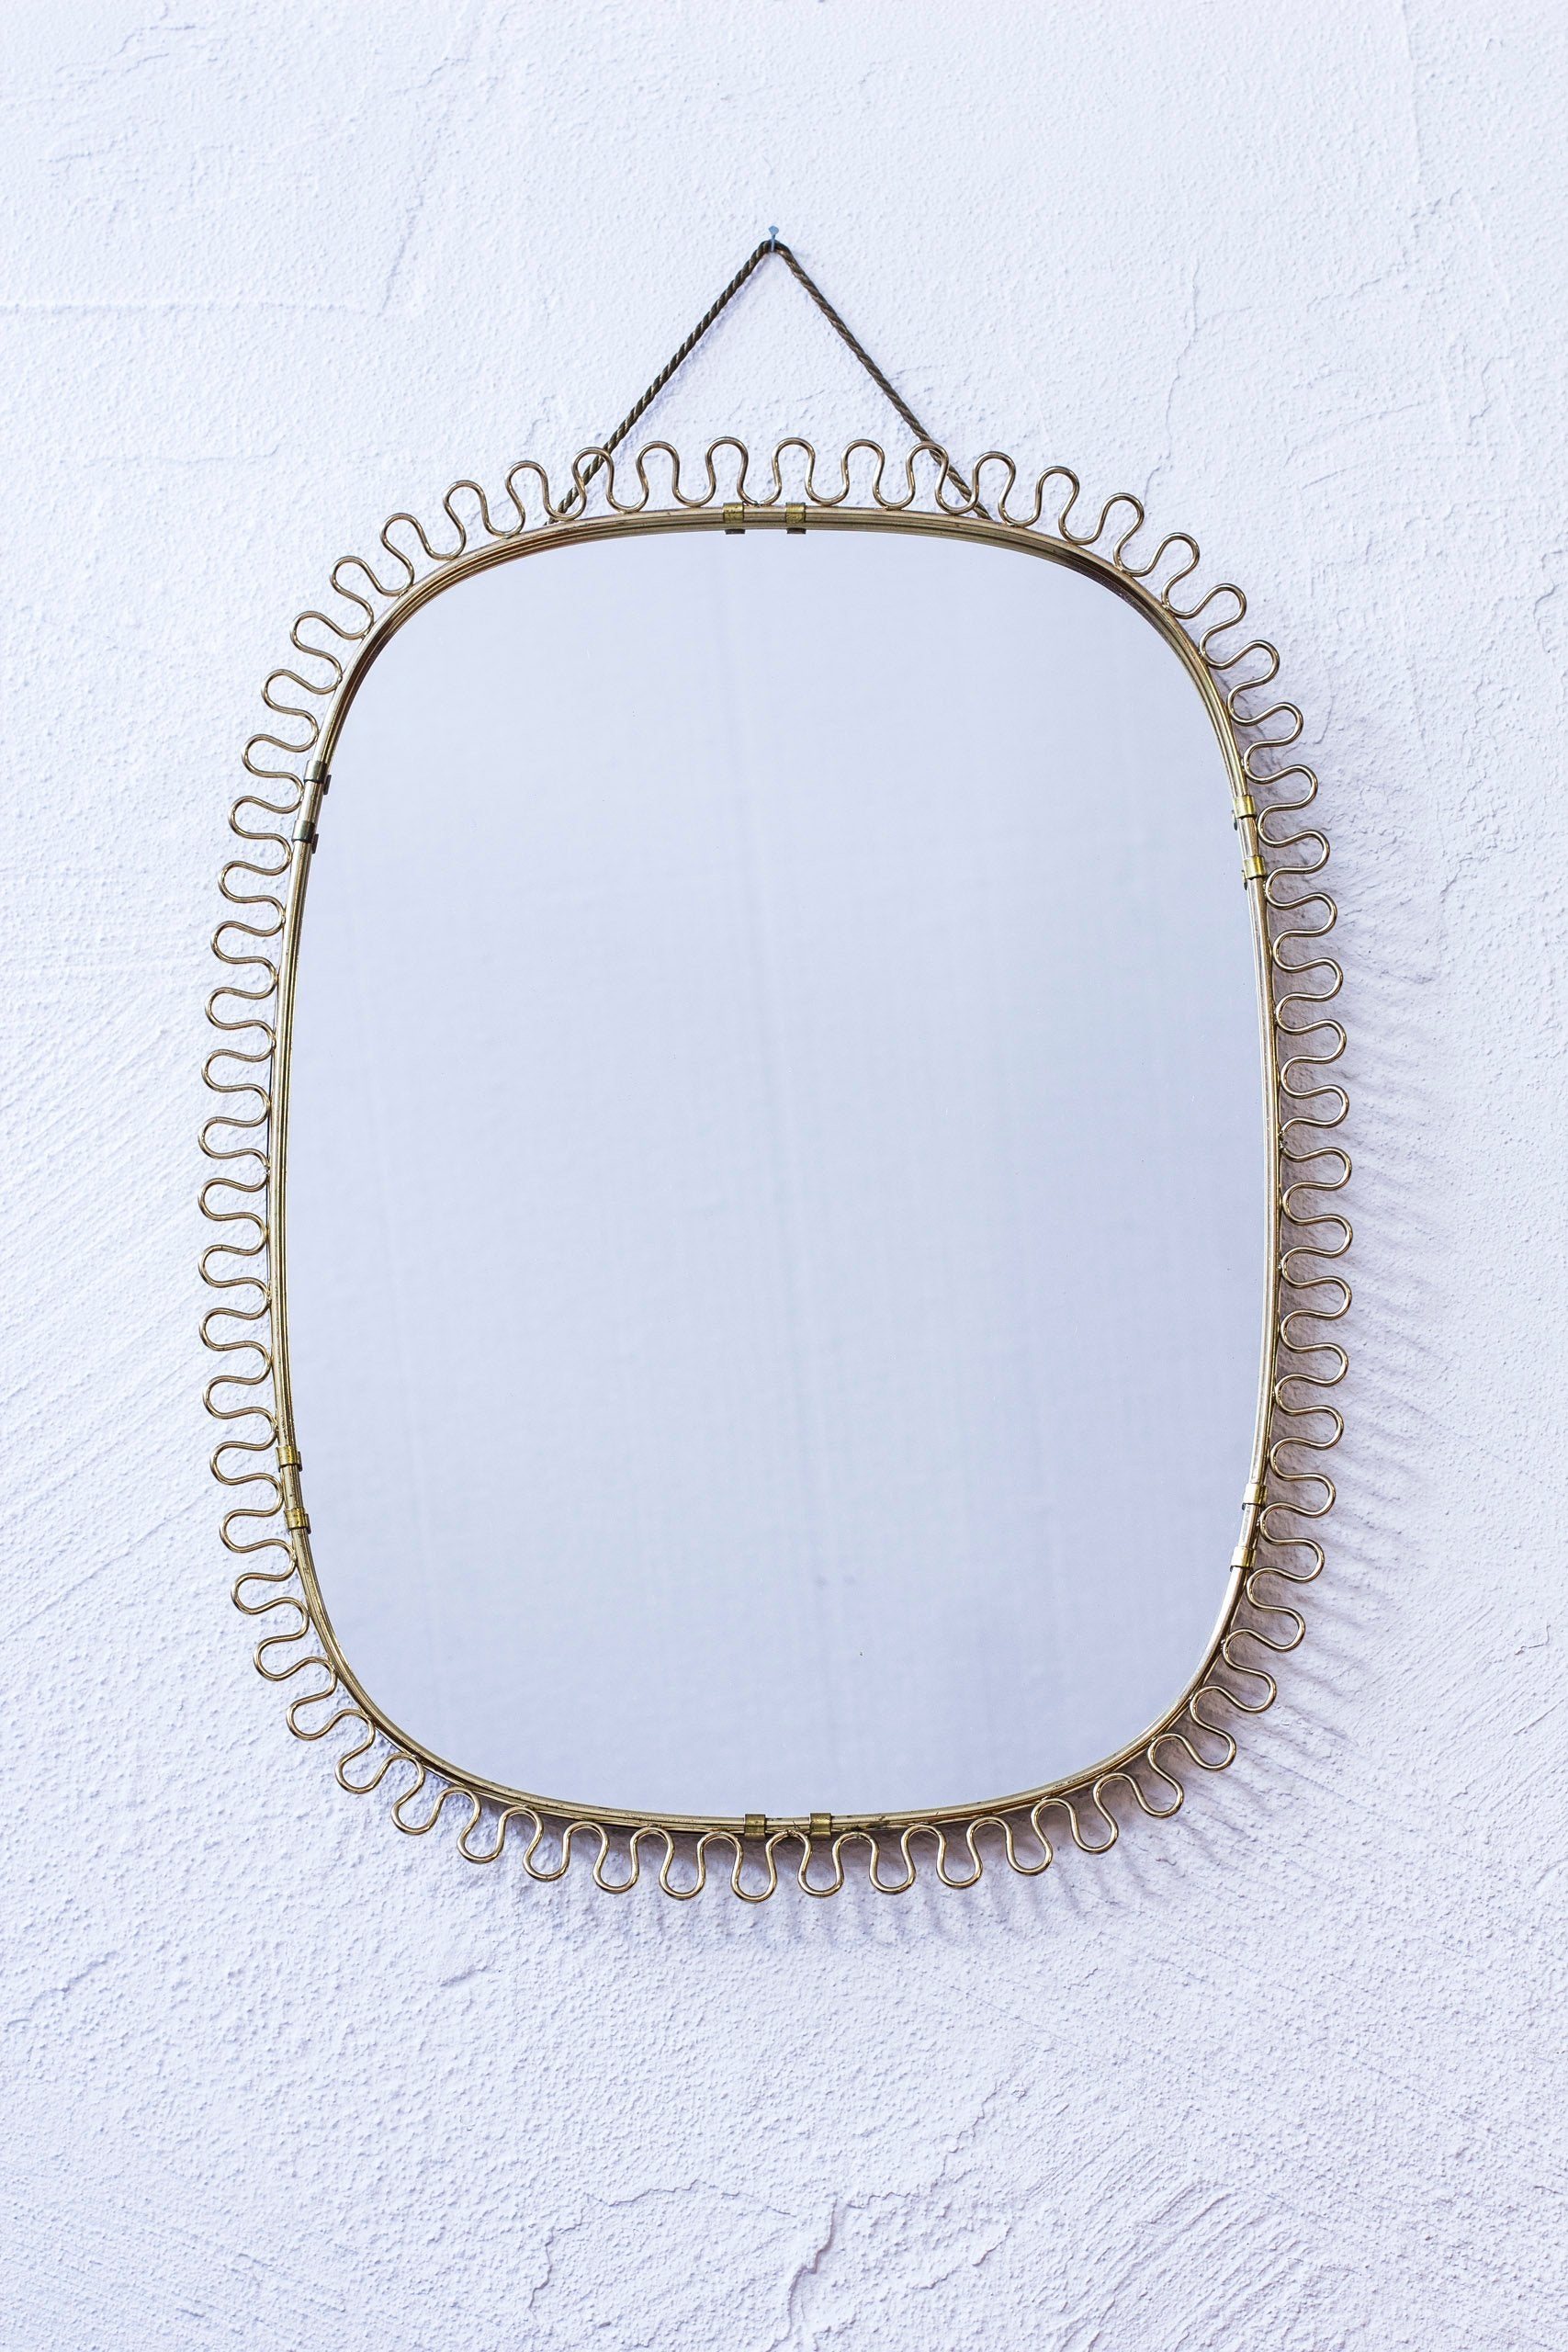 1950s wall mirror by Josef Frank